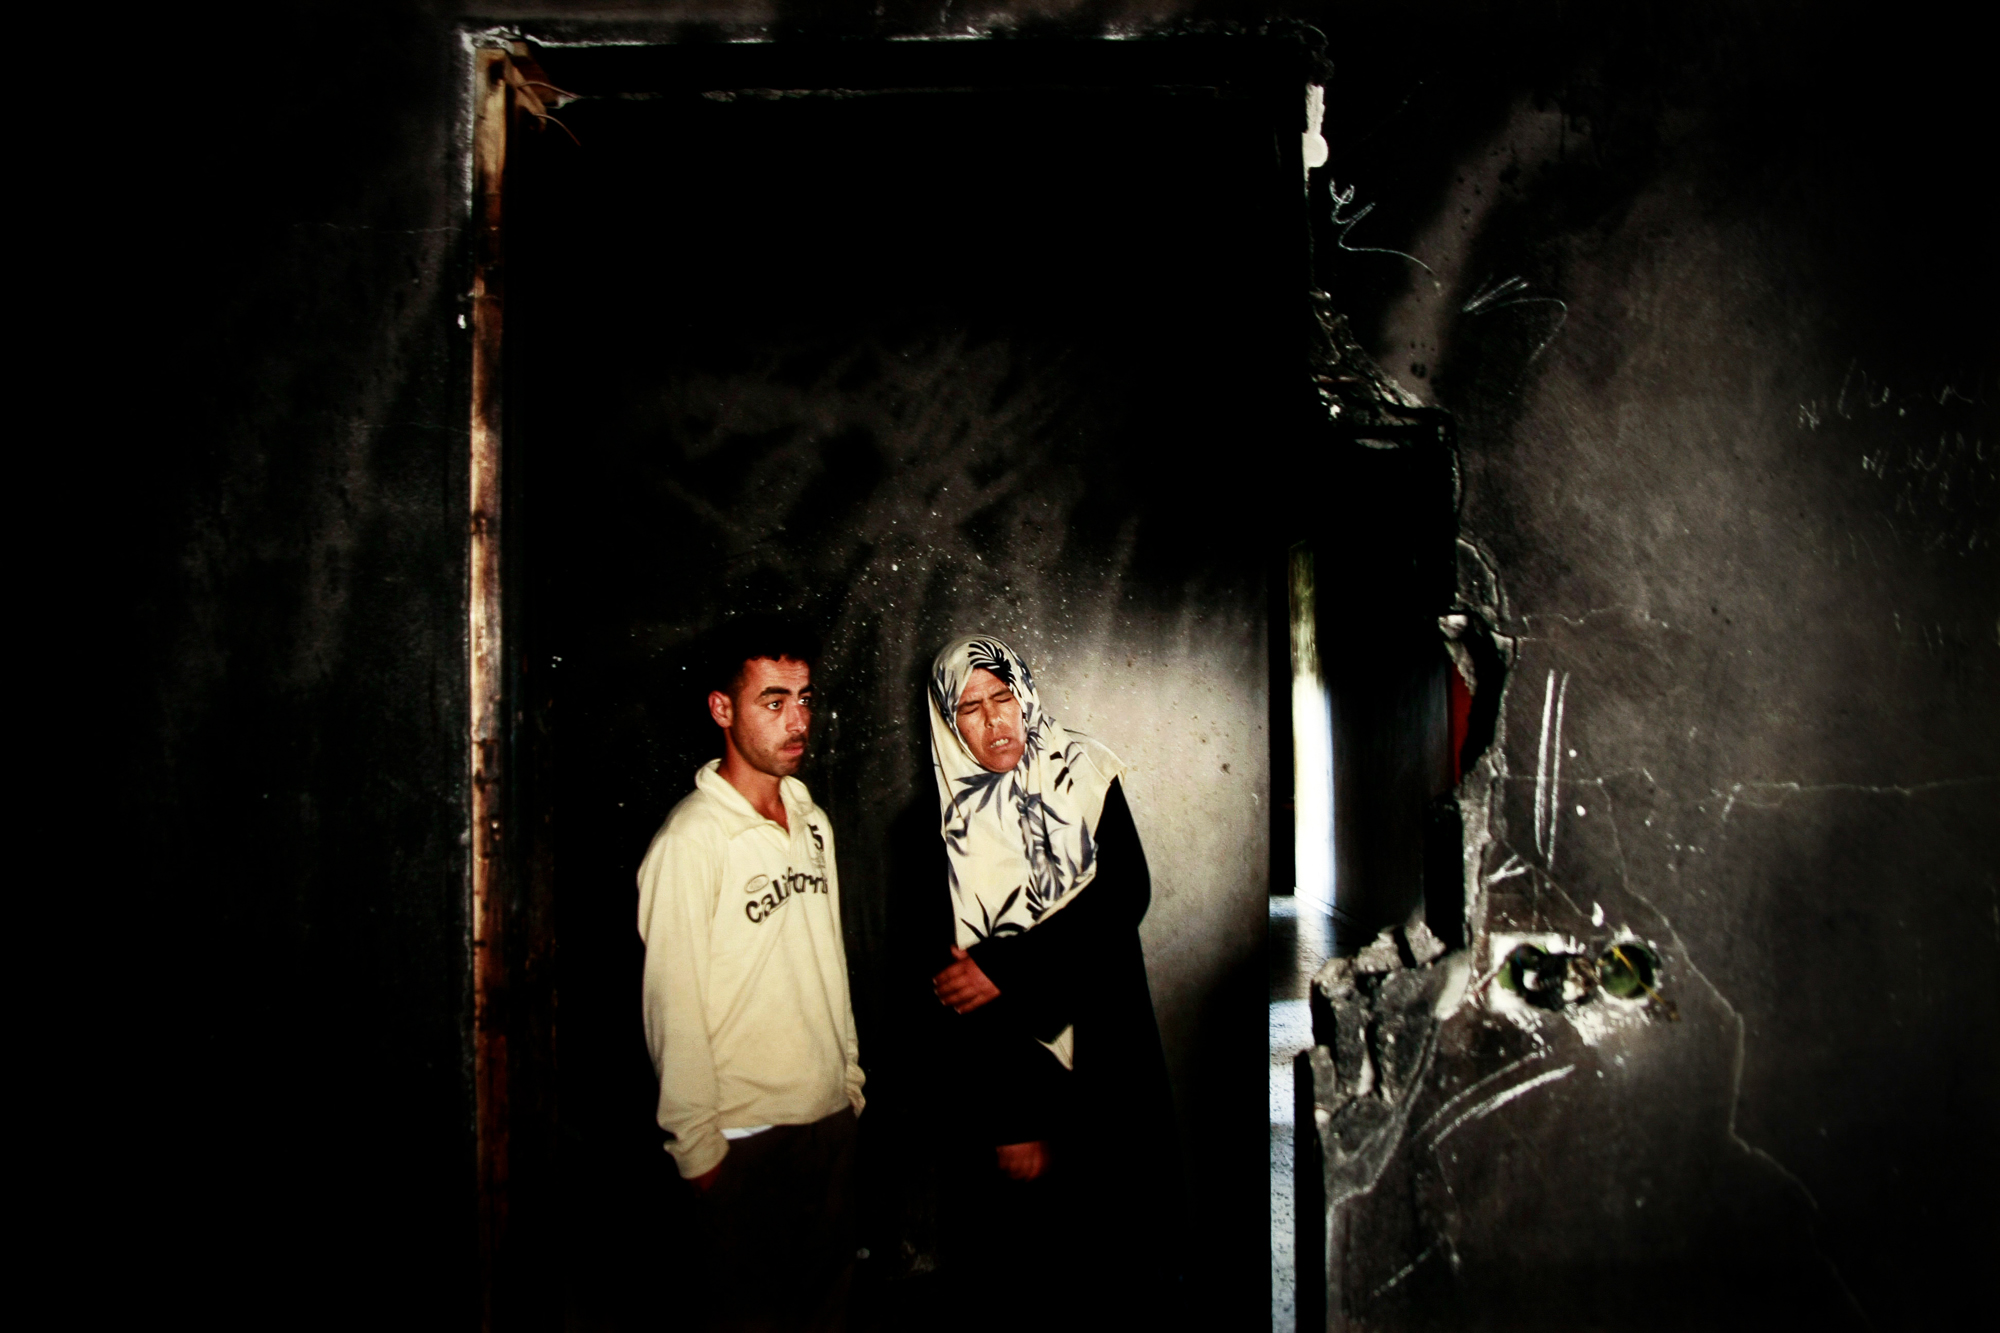 Sabha Abu Halima and her son Ahmed Abu Halima in their house, which was destroyed by fire from phosphoric bombs dropped by Israel during Gaza War. Photo: Eman Mohammed